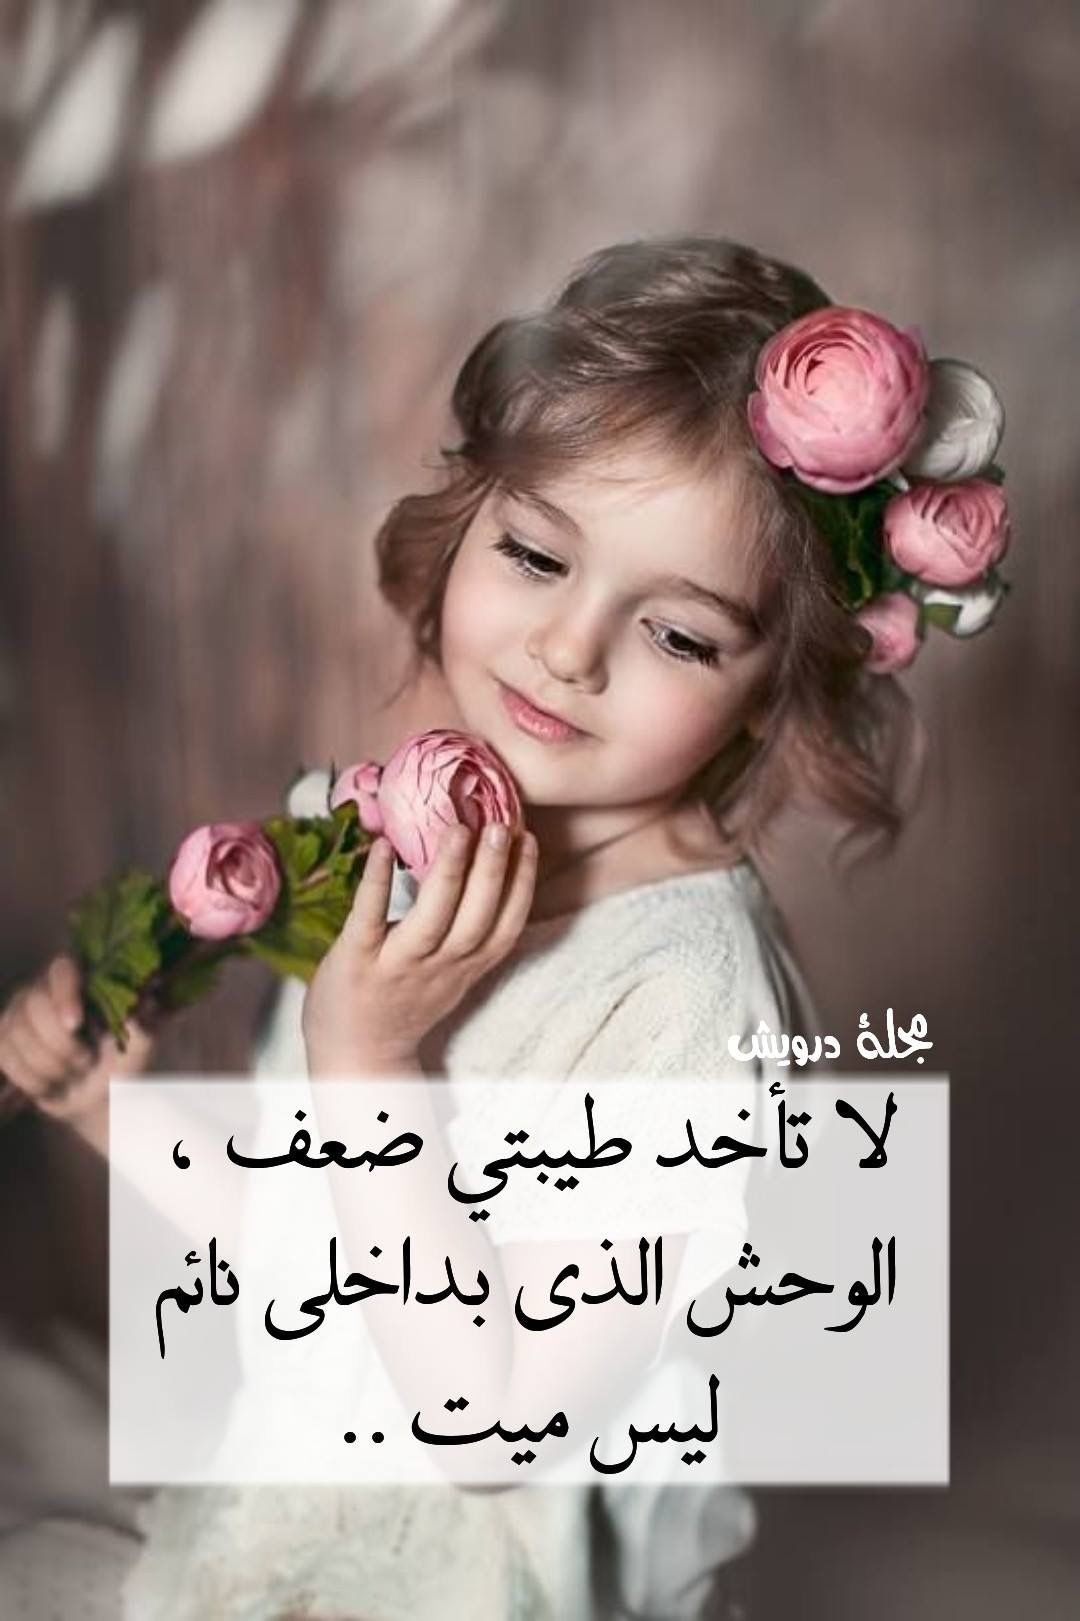 Pin By رودينا محمد On Photo Quotes Photo Quotes Arabic Quotes Beautiful Arabic Words